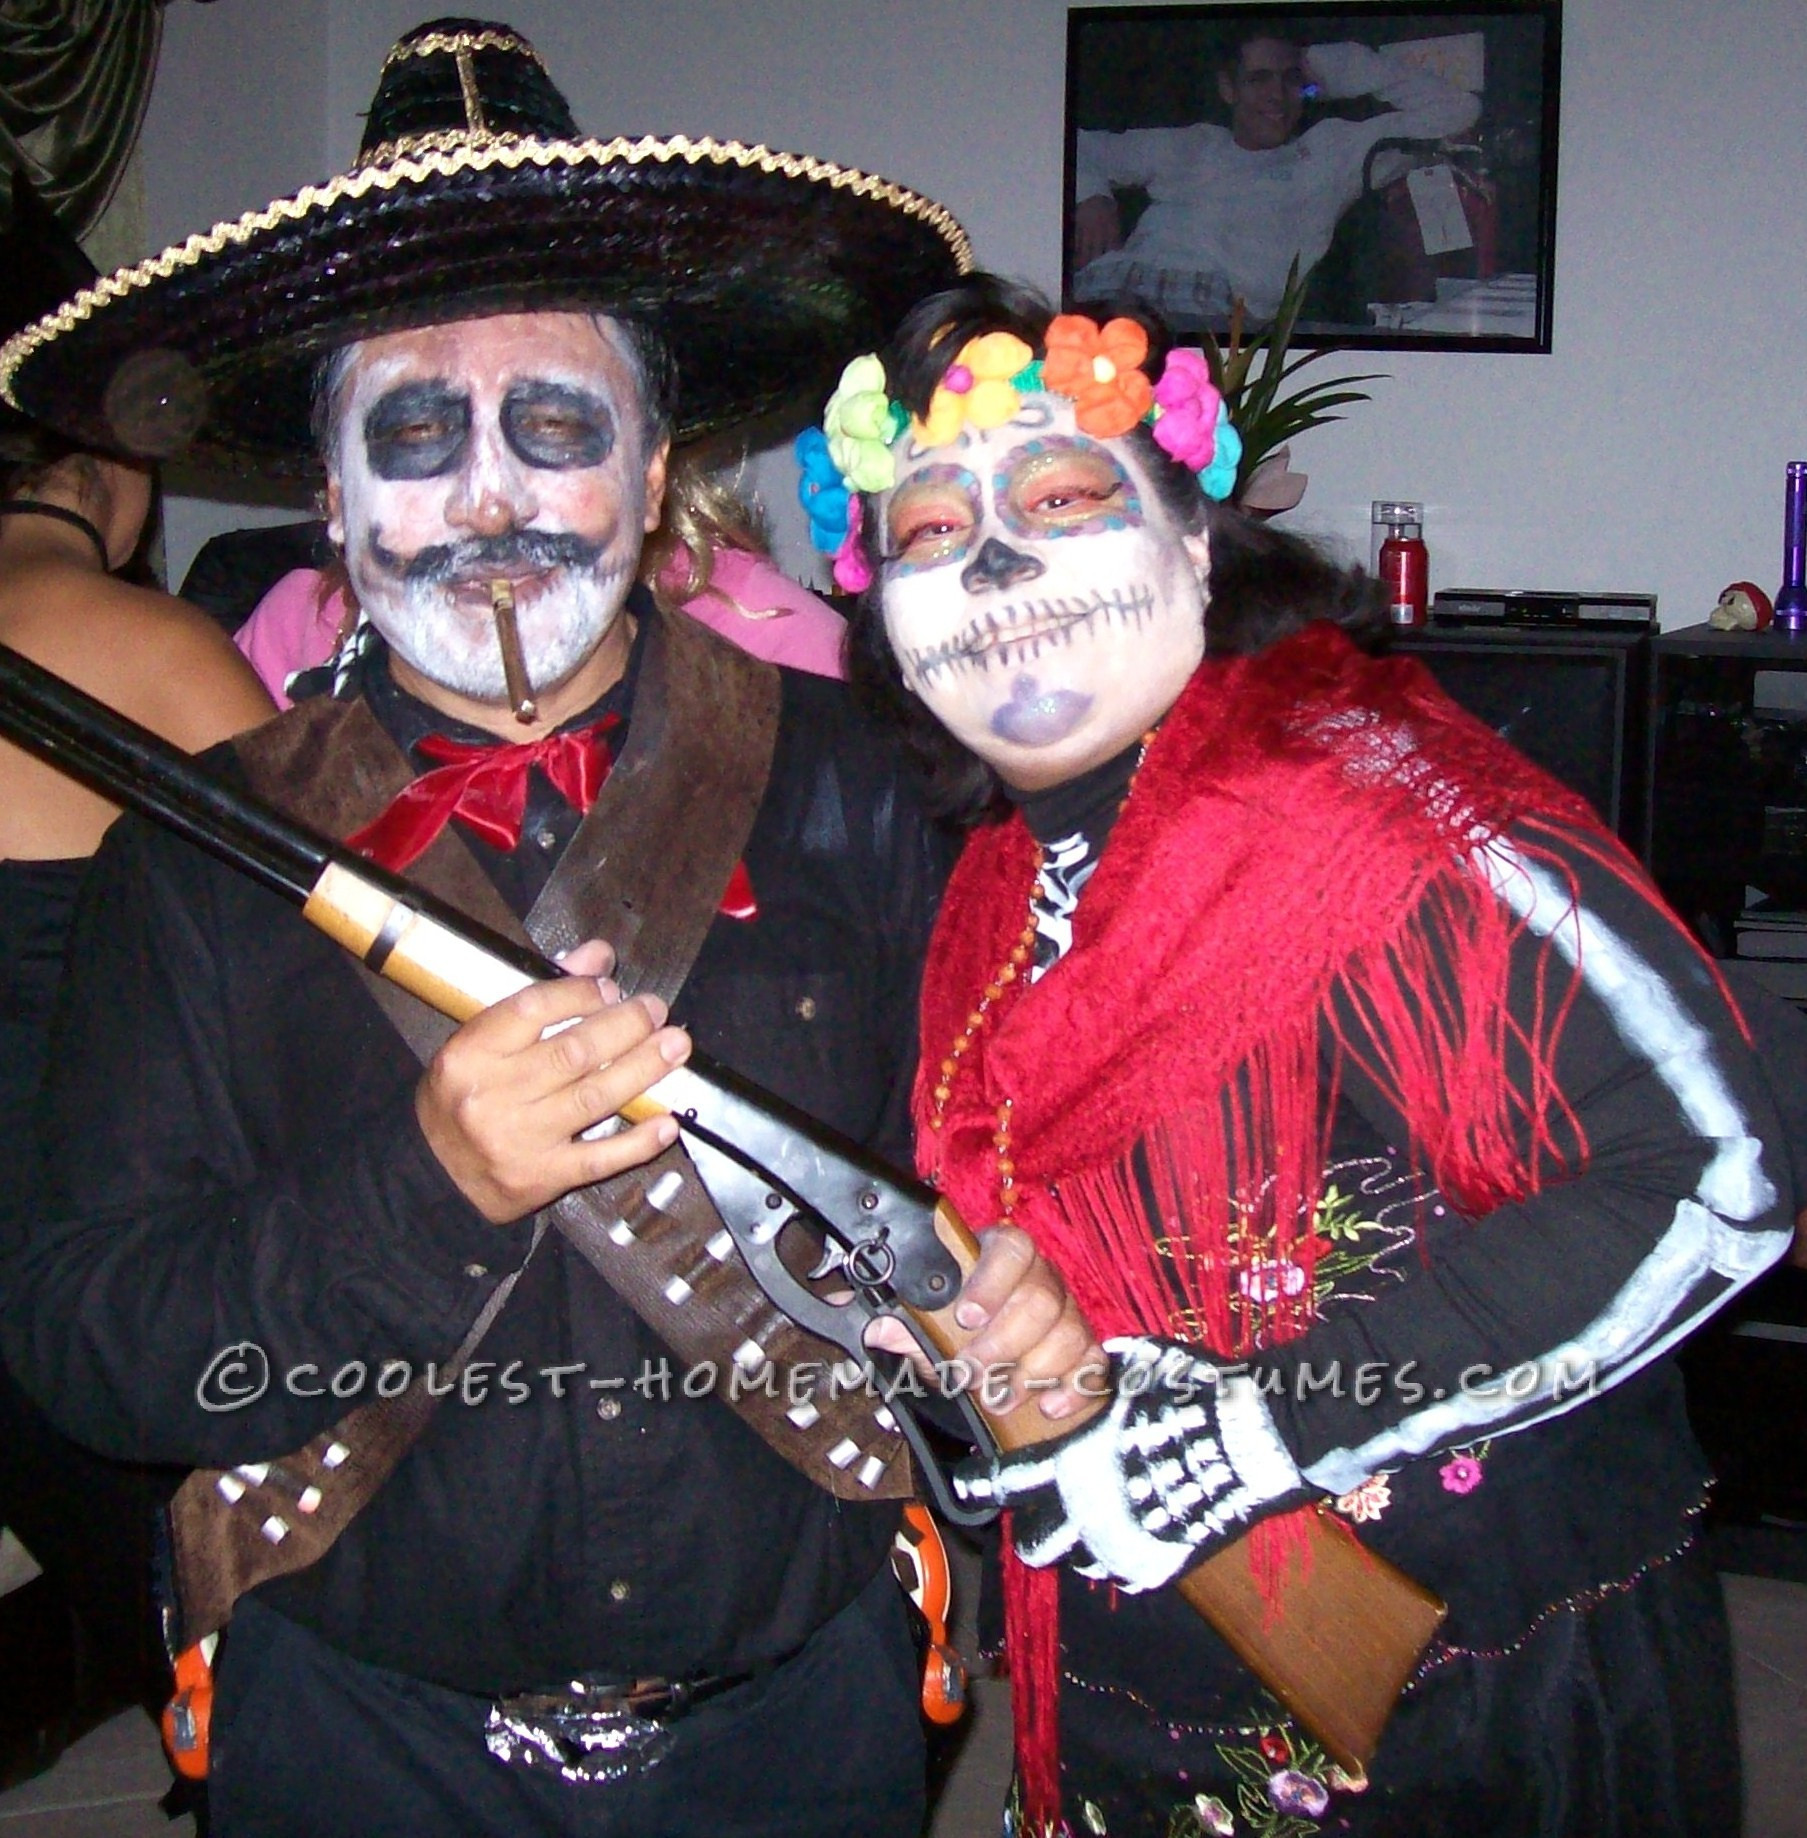 Coolest Day of the Dead Couples Halloween Costume